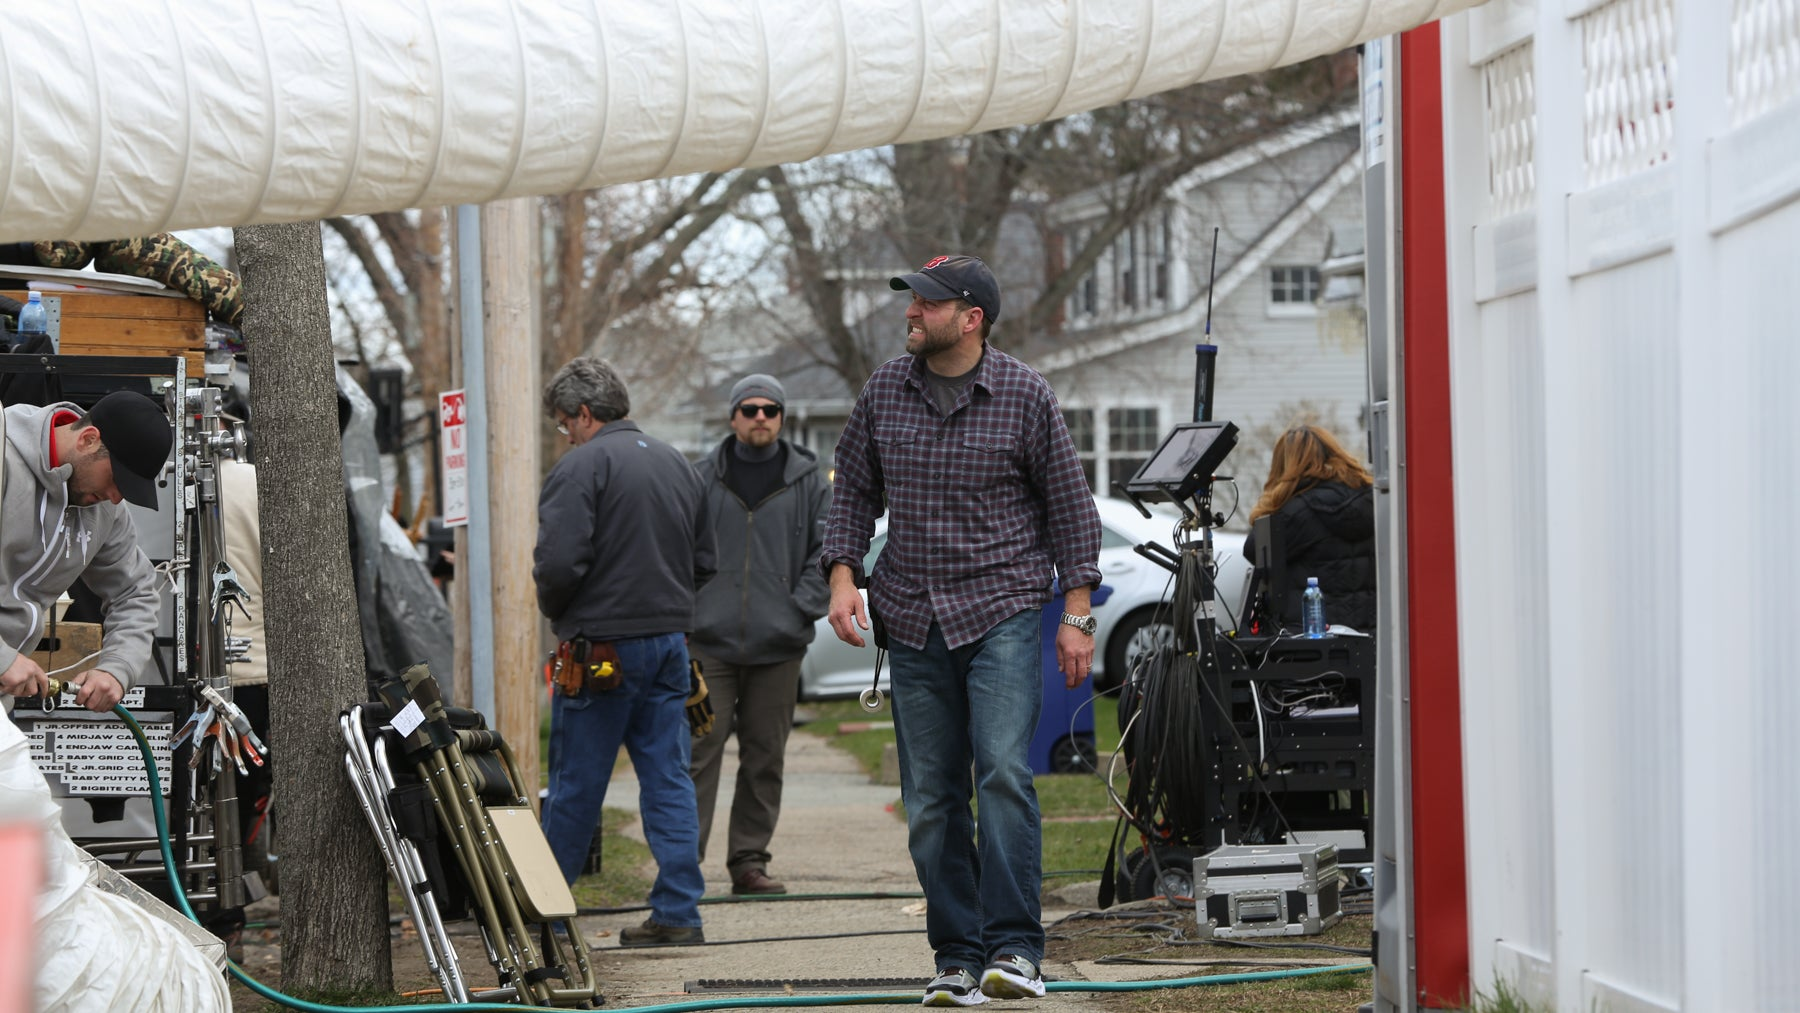 Patriot's Day filming in Quincy.